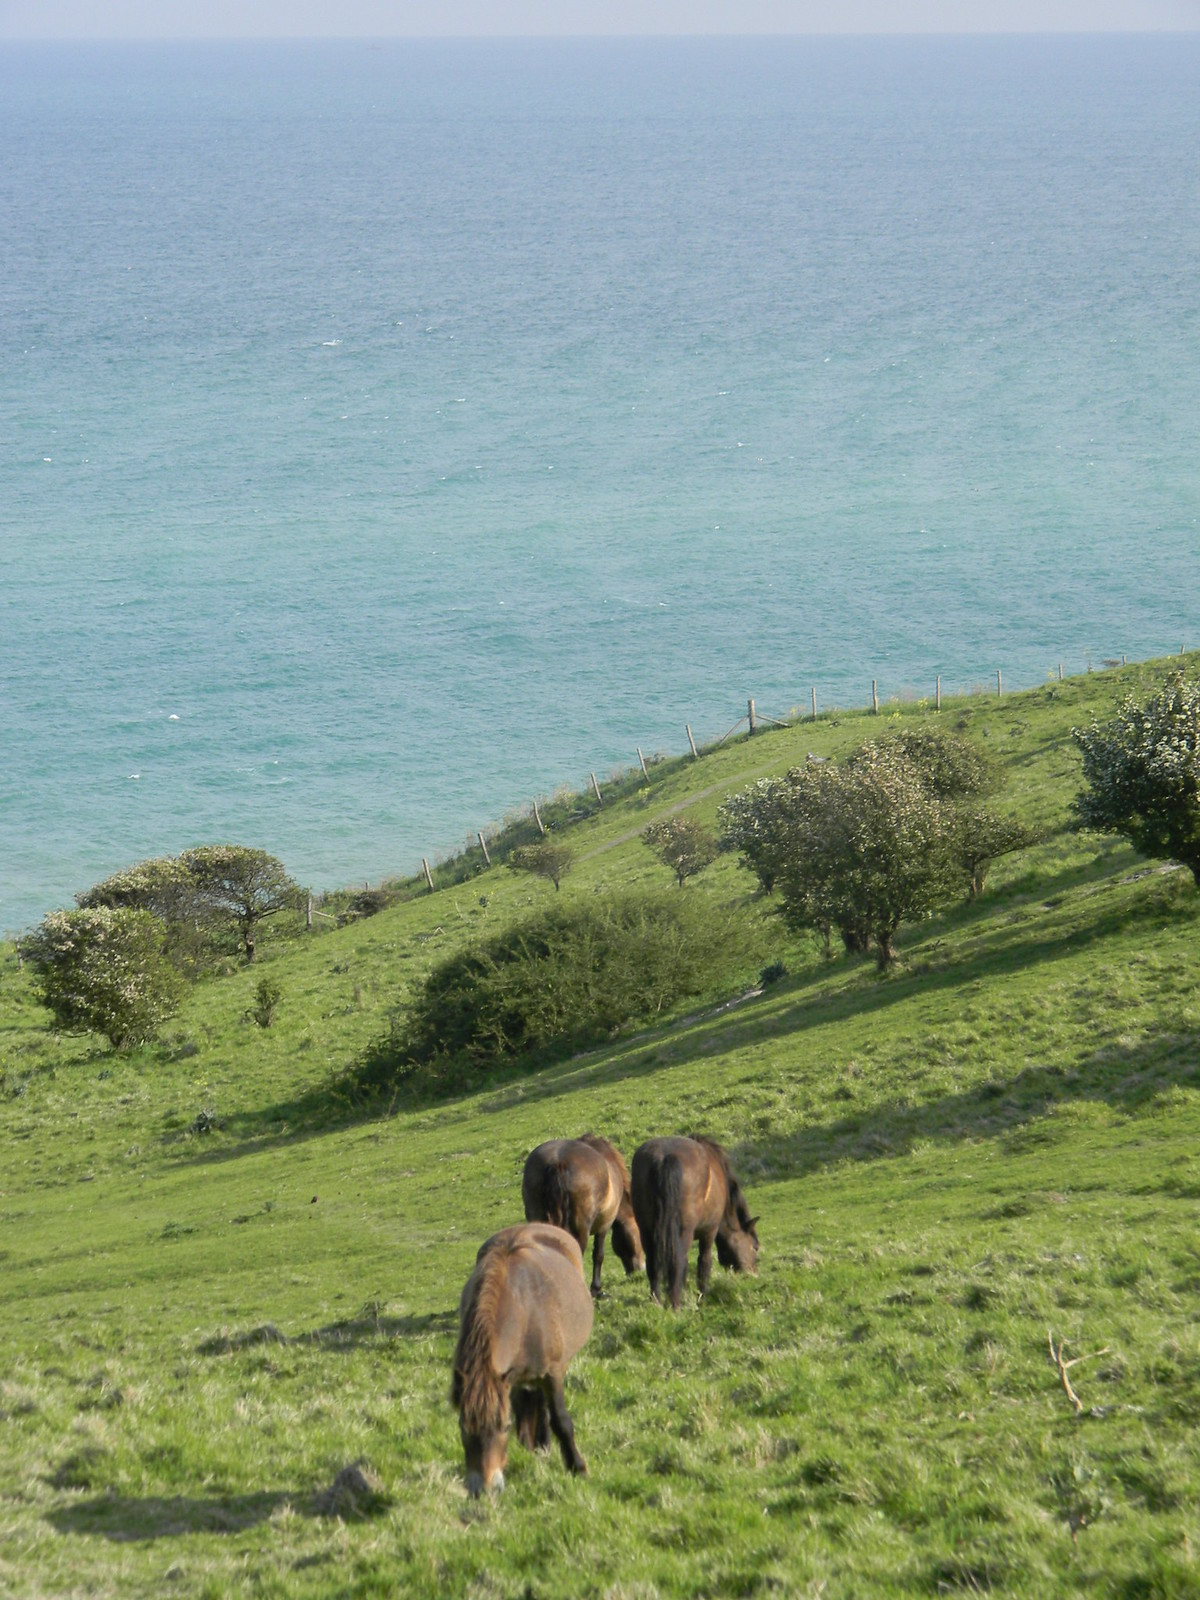 Horses grazing the clifftop Deal to Dover But not the Konik horses I thought they were, www.flickr.com/photos/wellfedmanwalking/5771390451/in/photostream/ www.flickr.com/photos/wellfedmanwalking/5771390451/in/pho... Theyre more inland.